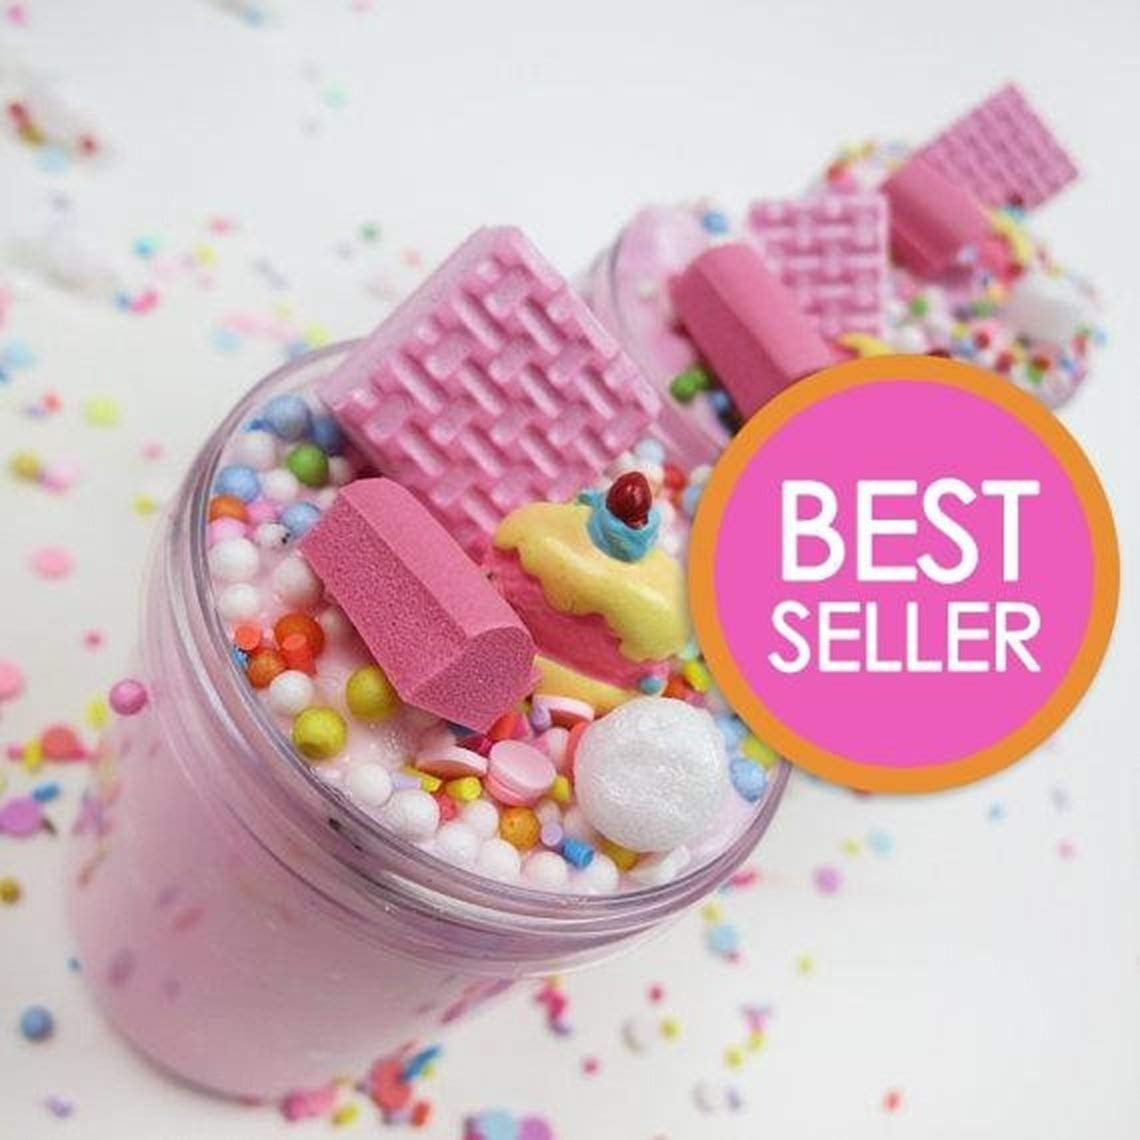 e524f0352f3d ORIGINAL Strawberry Pink Birthday Cake Slime with Cake Charm (Scented) - 4  oz - Made in USA